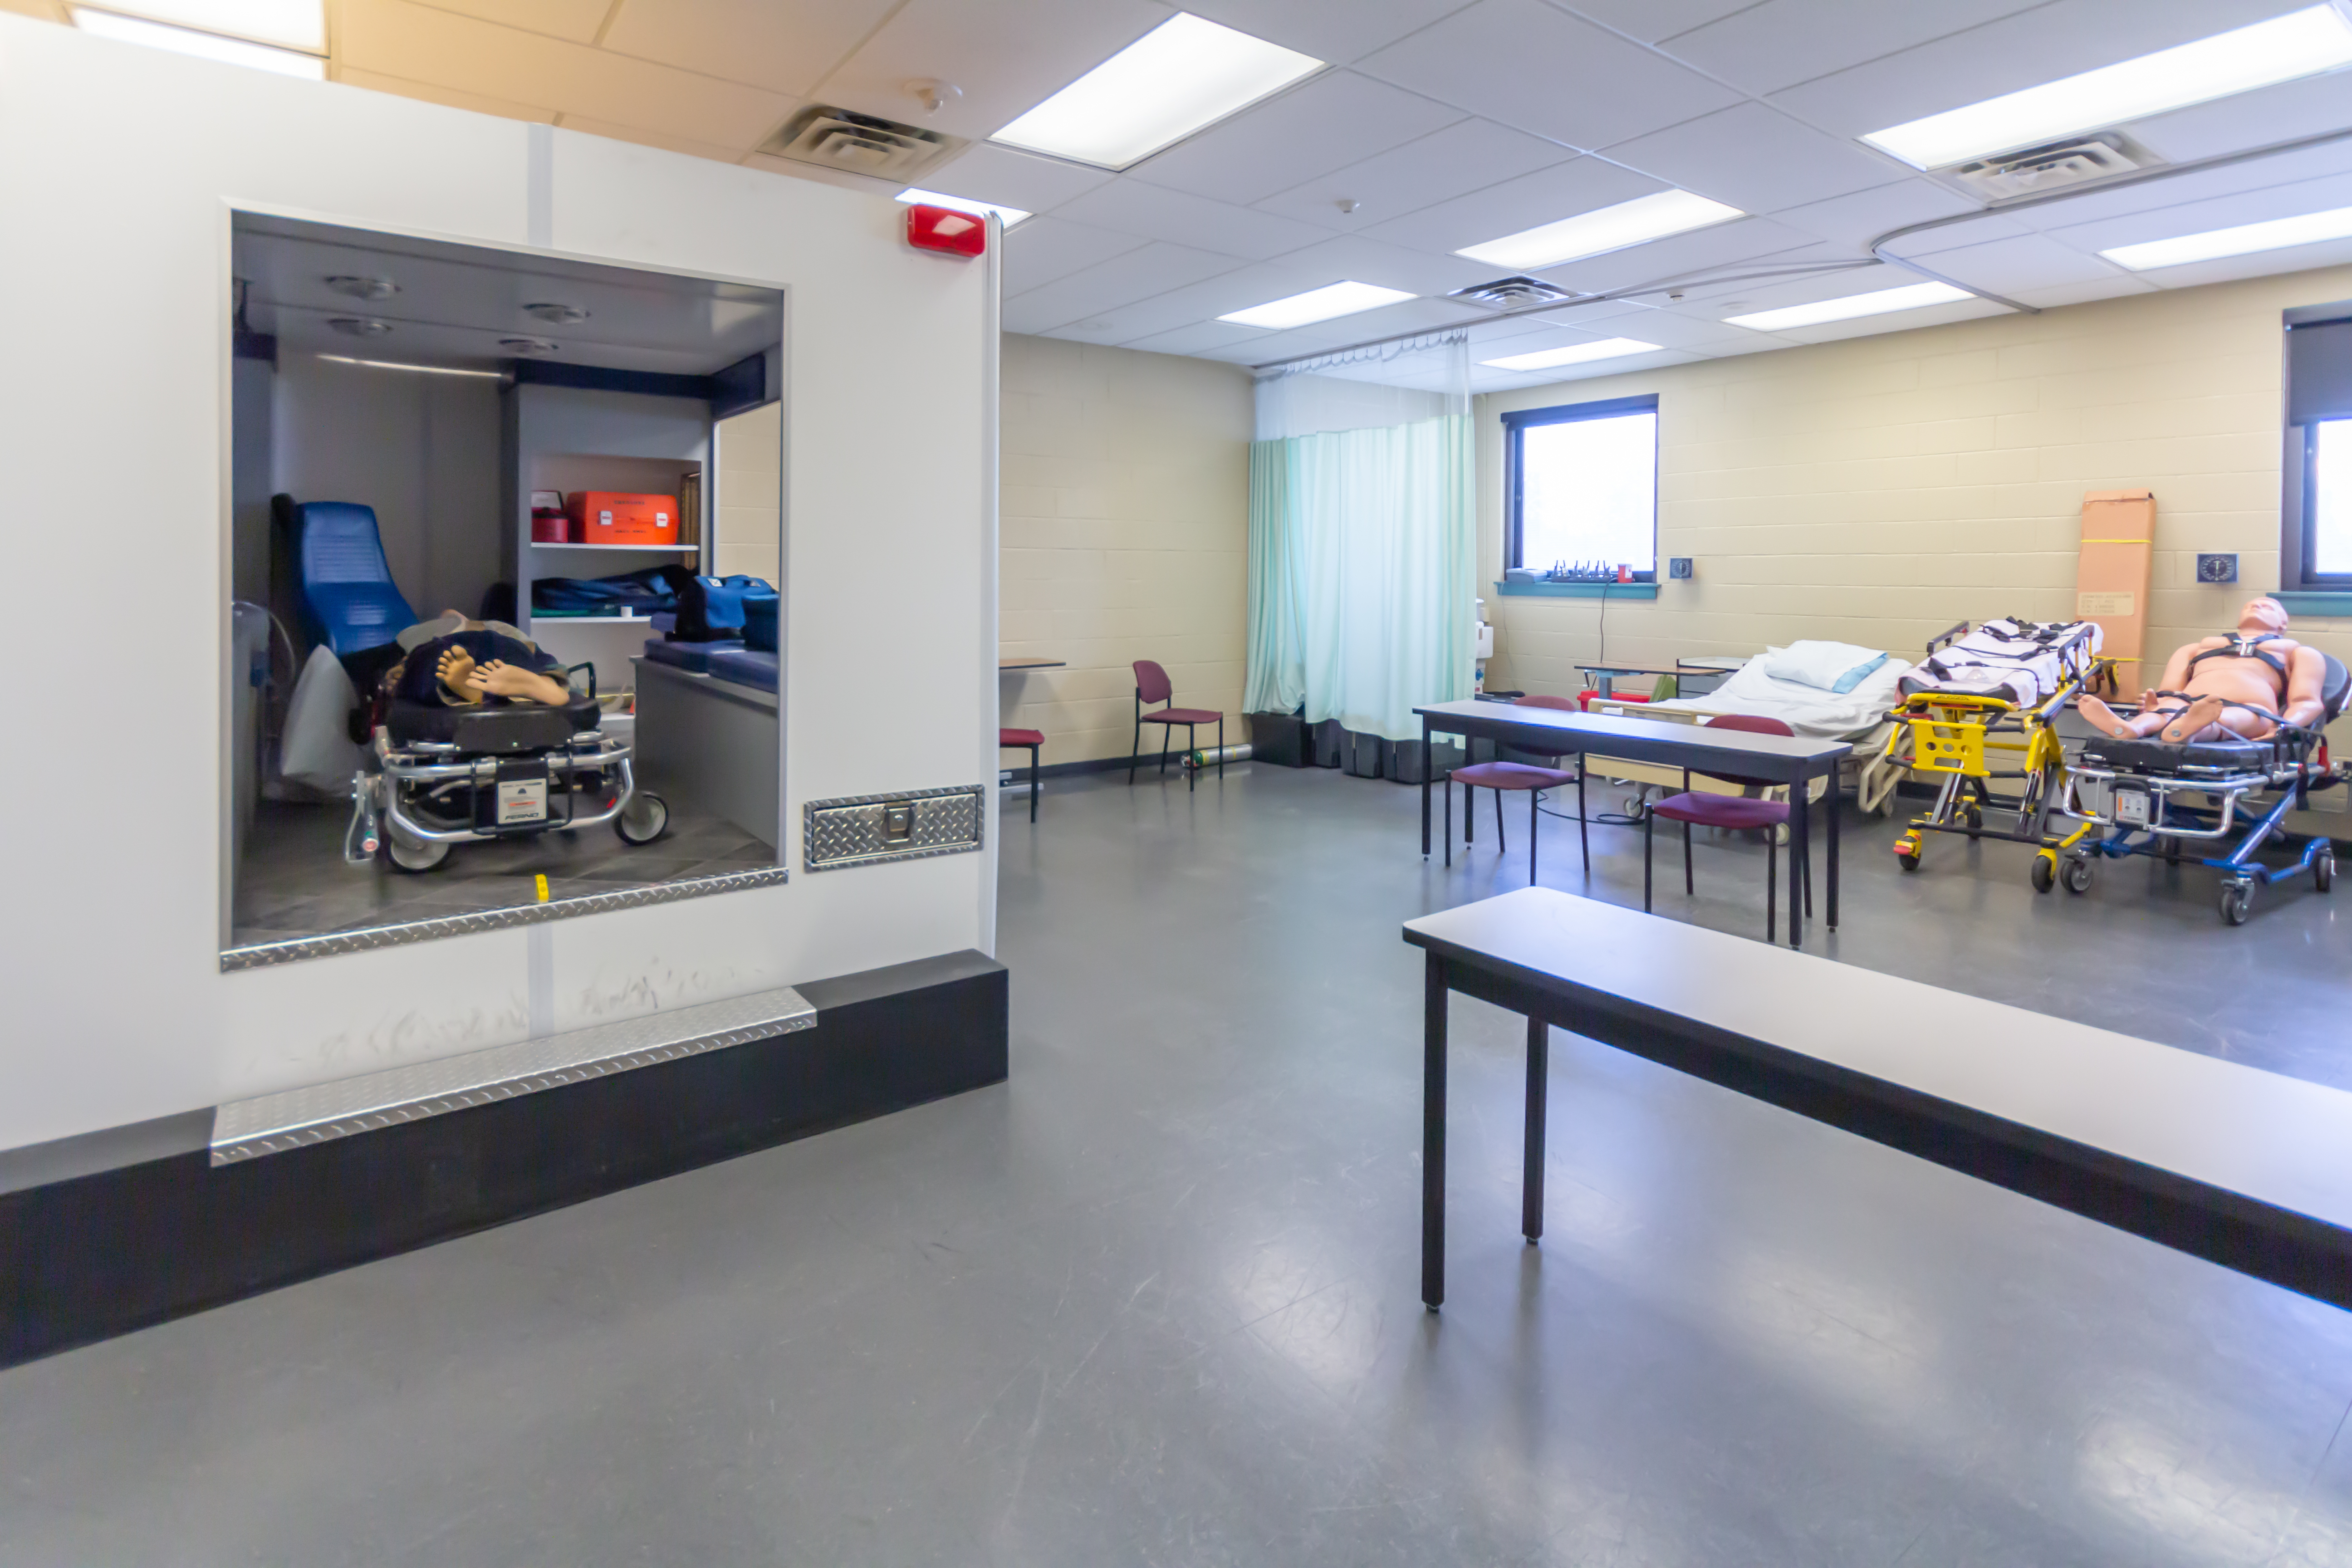 Emergency Medical Services Classroom (208)